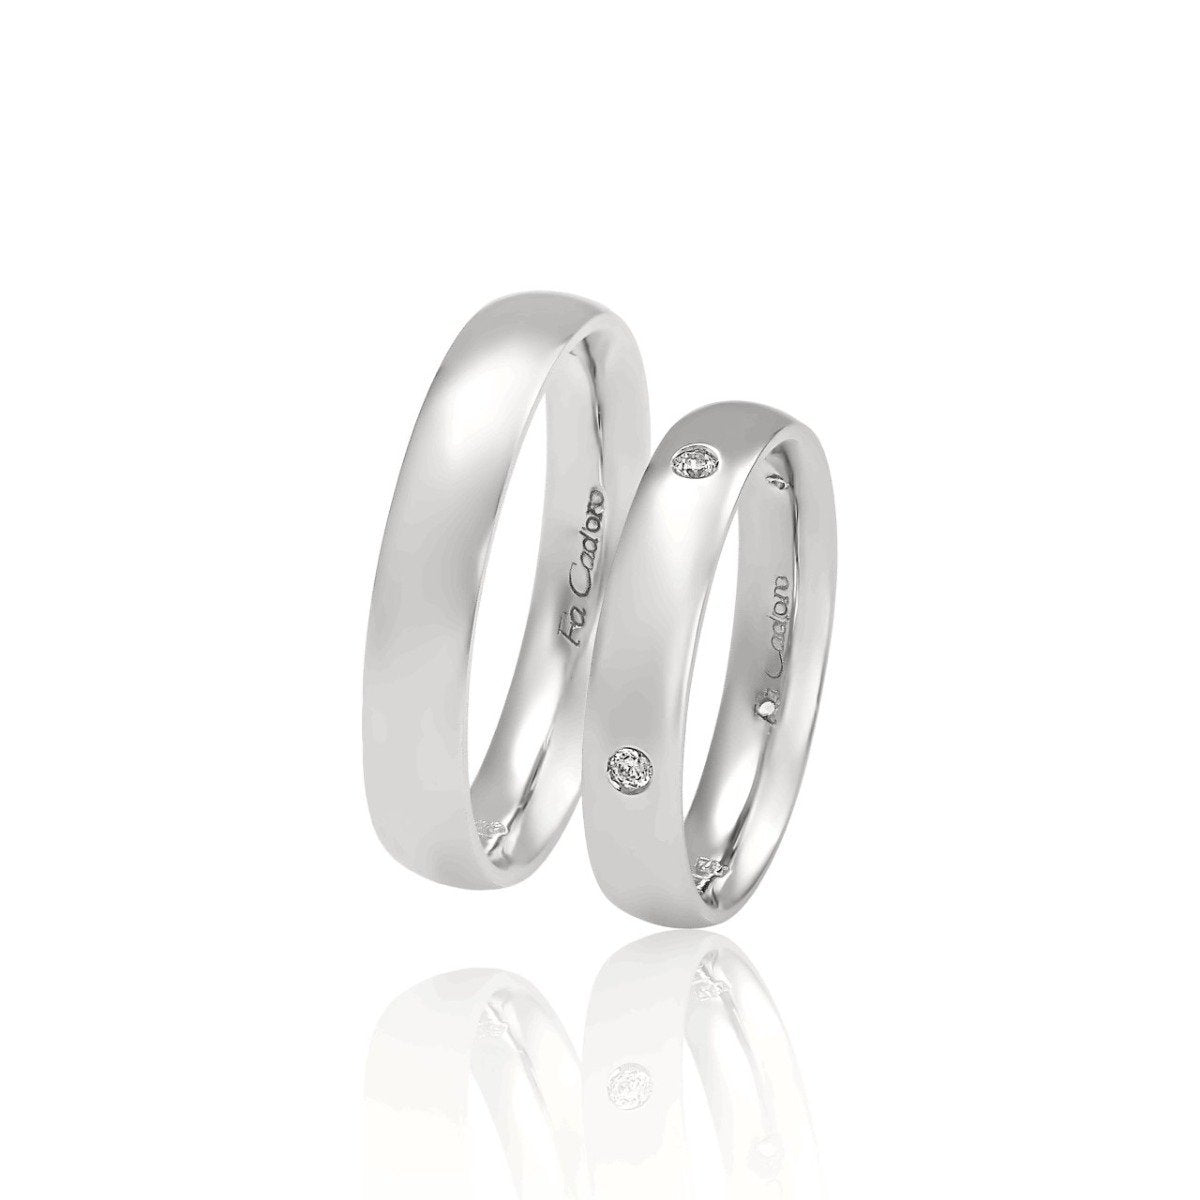 FaCad'oro WR-13 9ct and 14ct Gold Wedding Rings - Goldy Jewelry Store